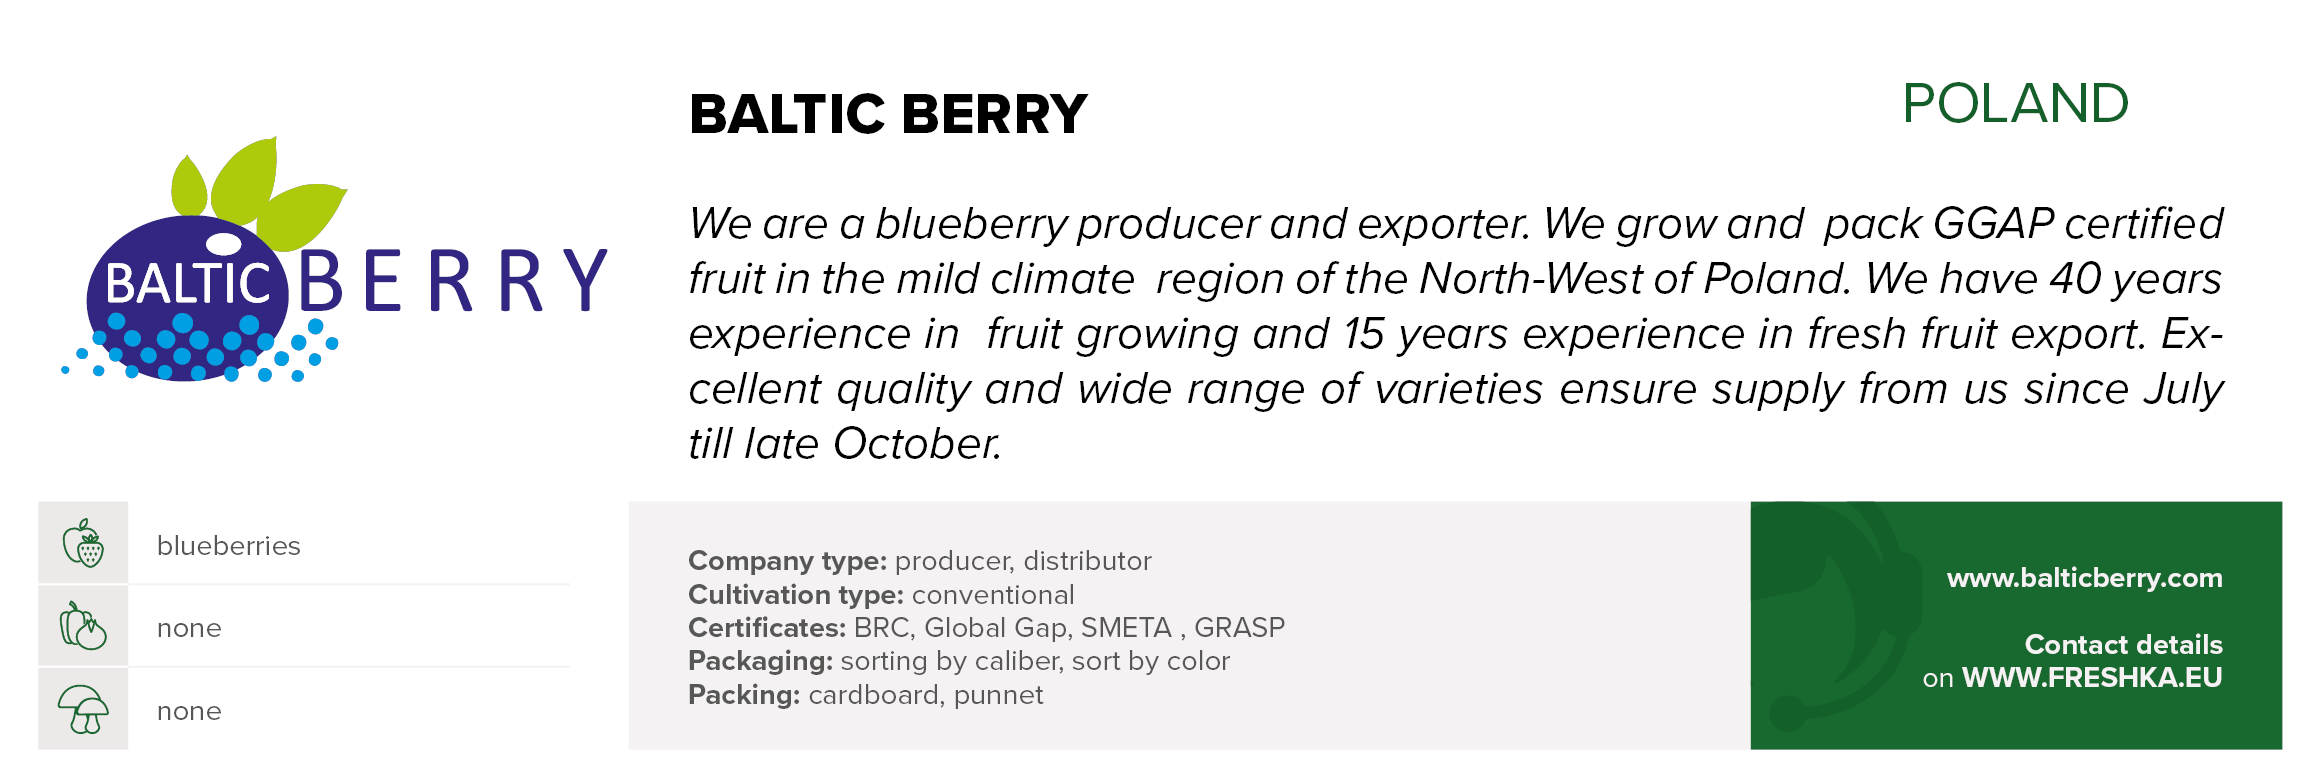 BALTIC BERRY